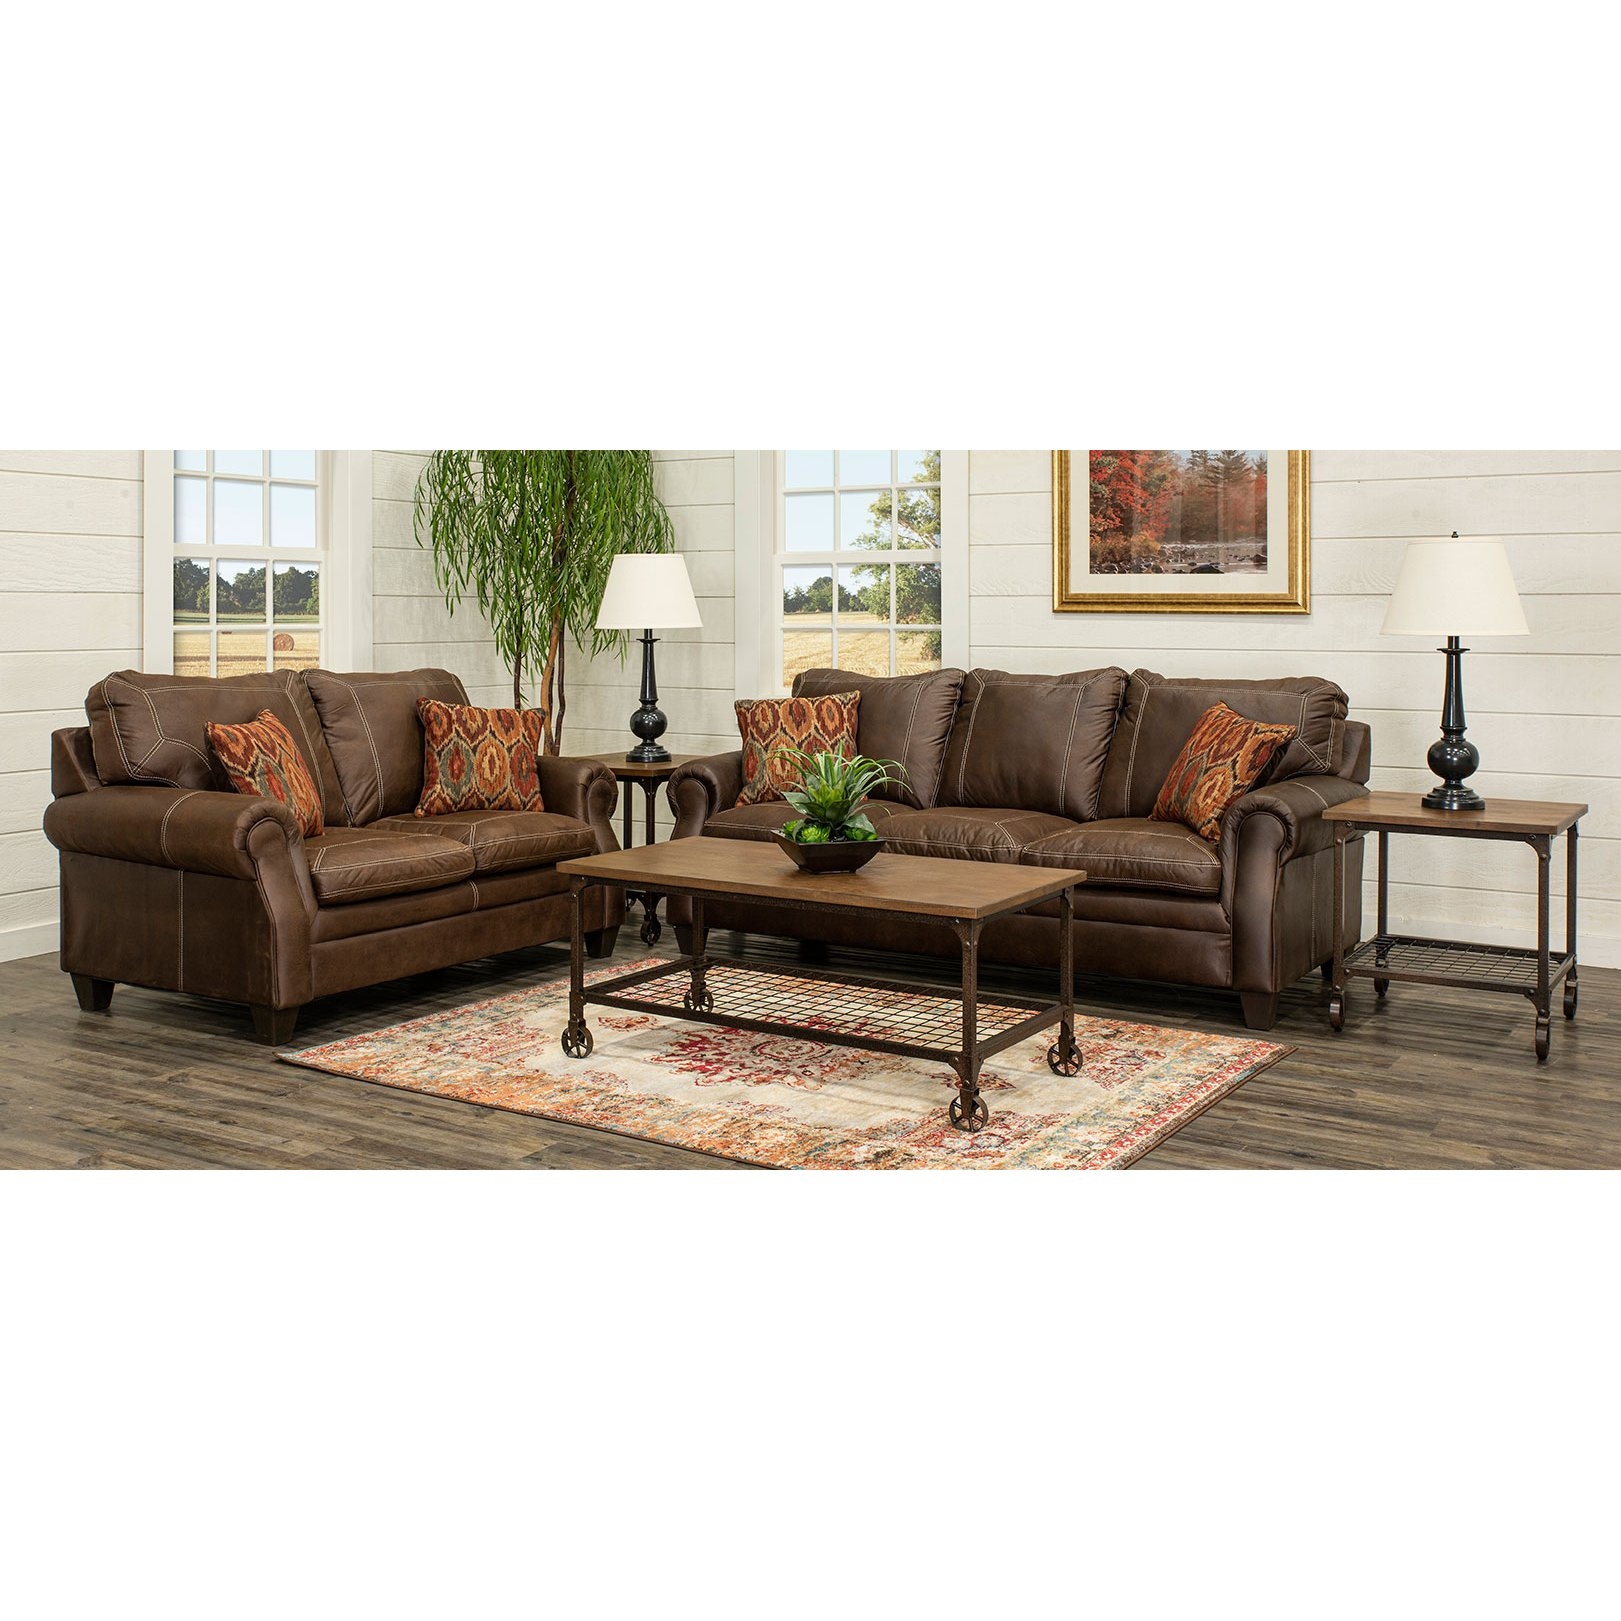 Classic Traditional Brown 7 Piece Living Room Set - Shiloh | RC ...